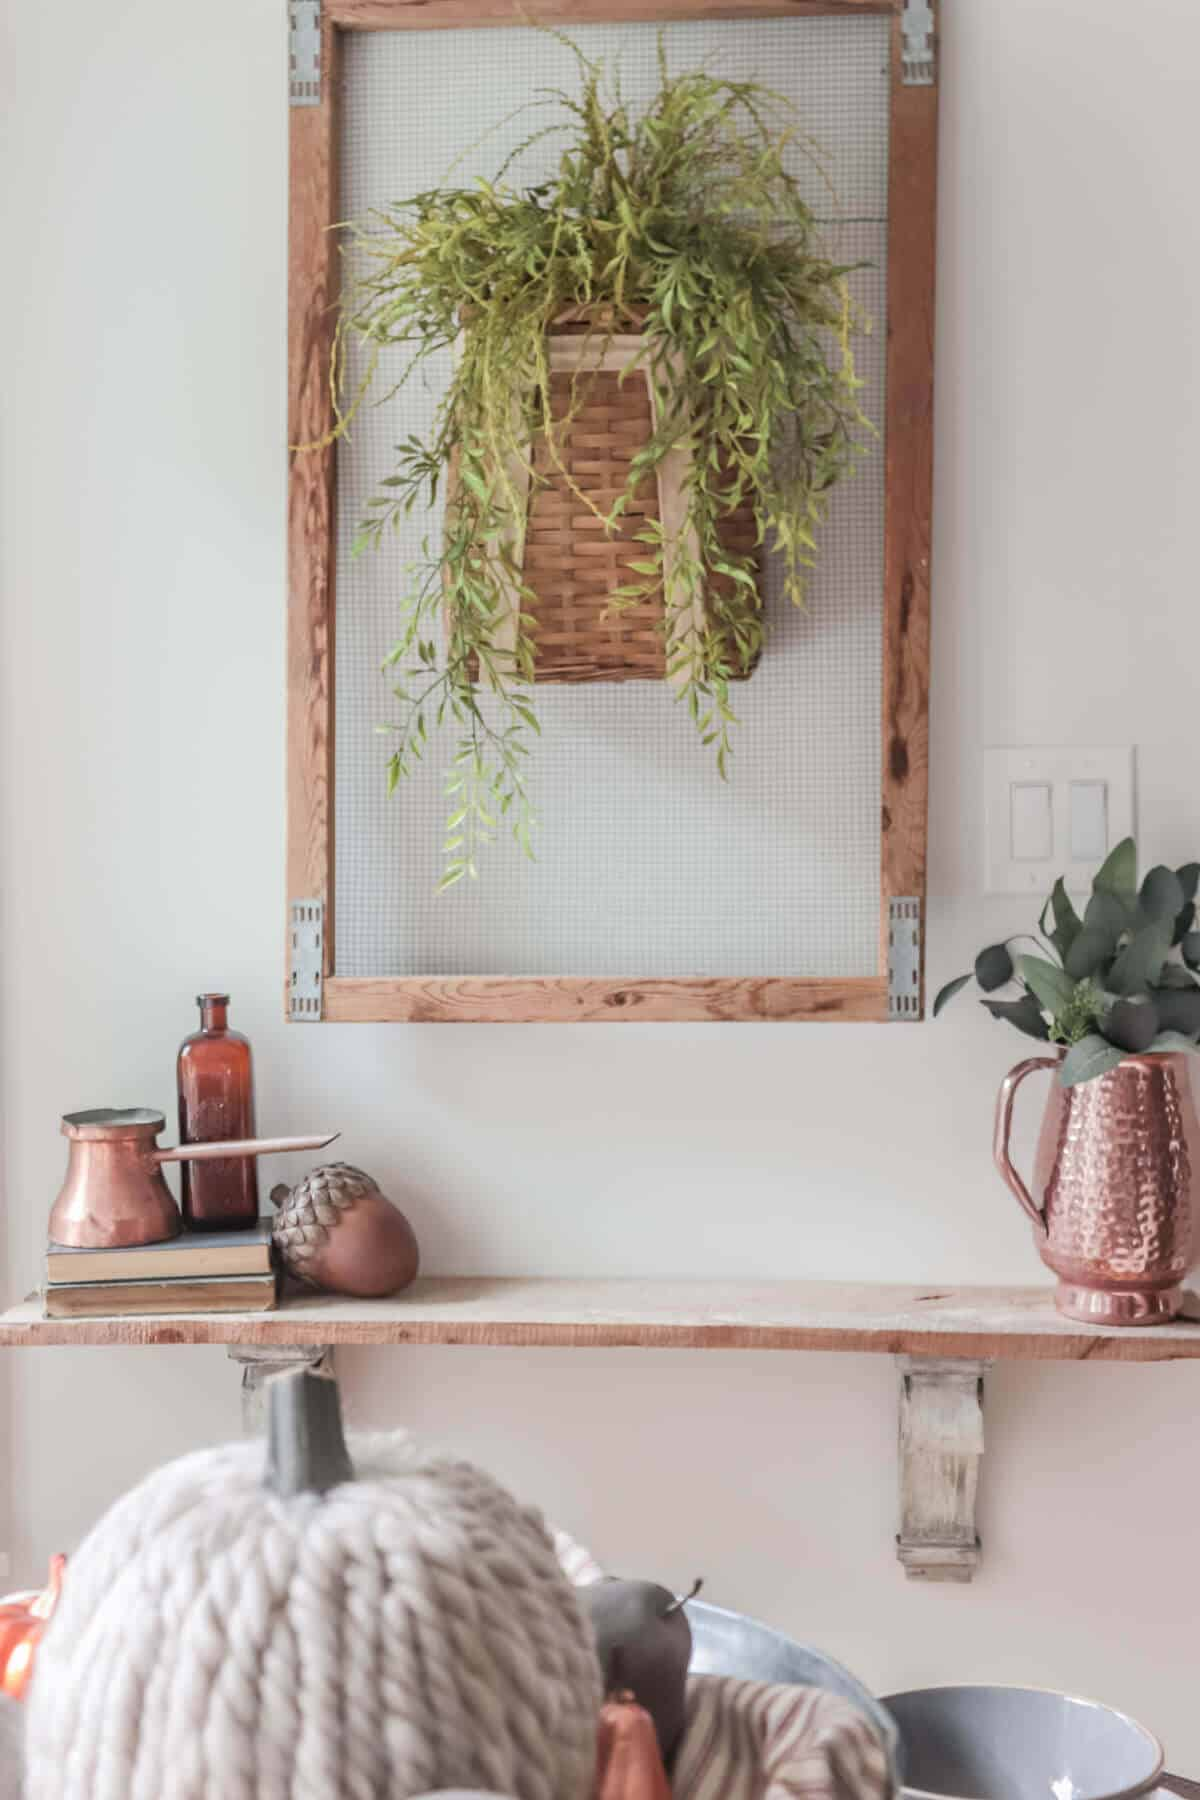 Tulip basket hanging on a wall with greenery trailing down over a small wall shelf decorated for fall